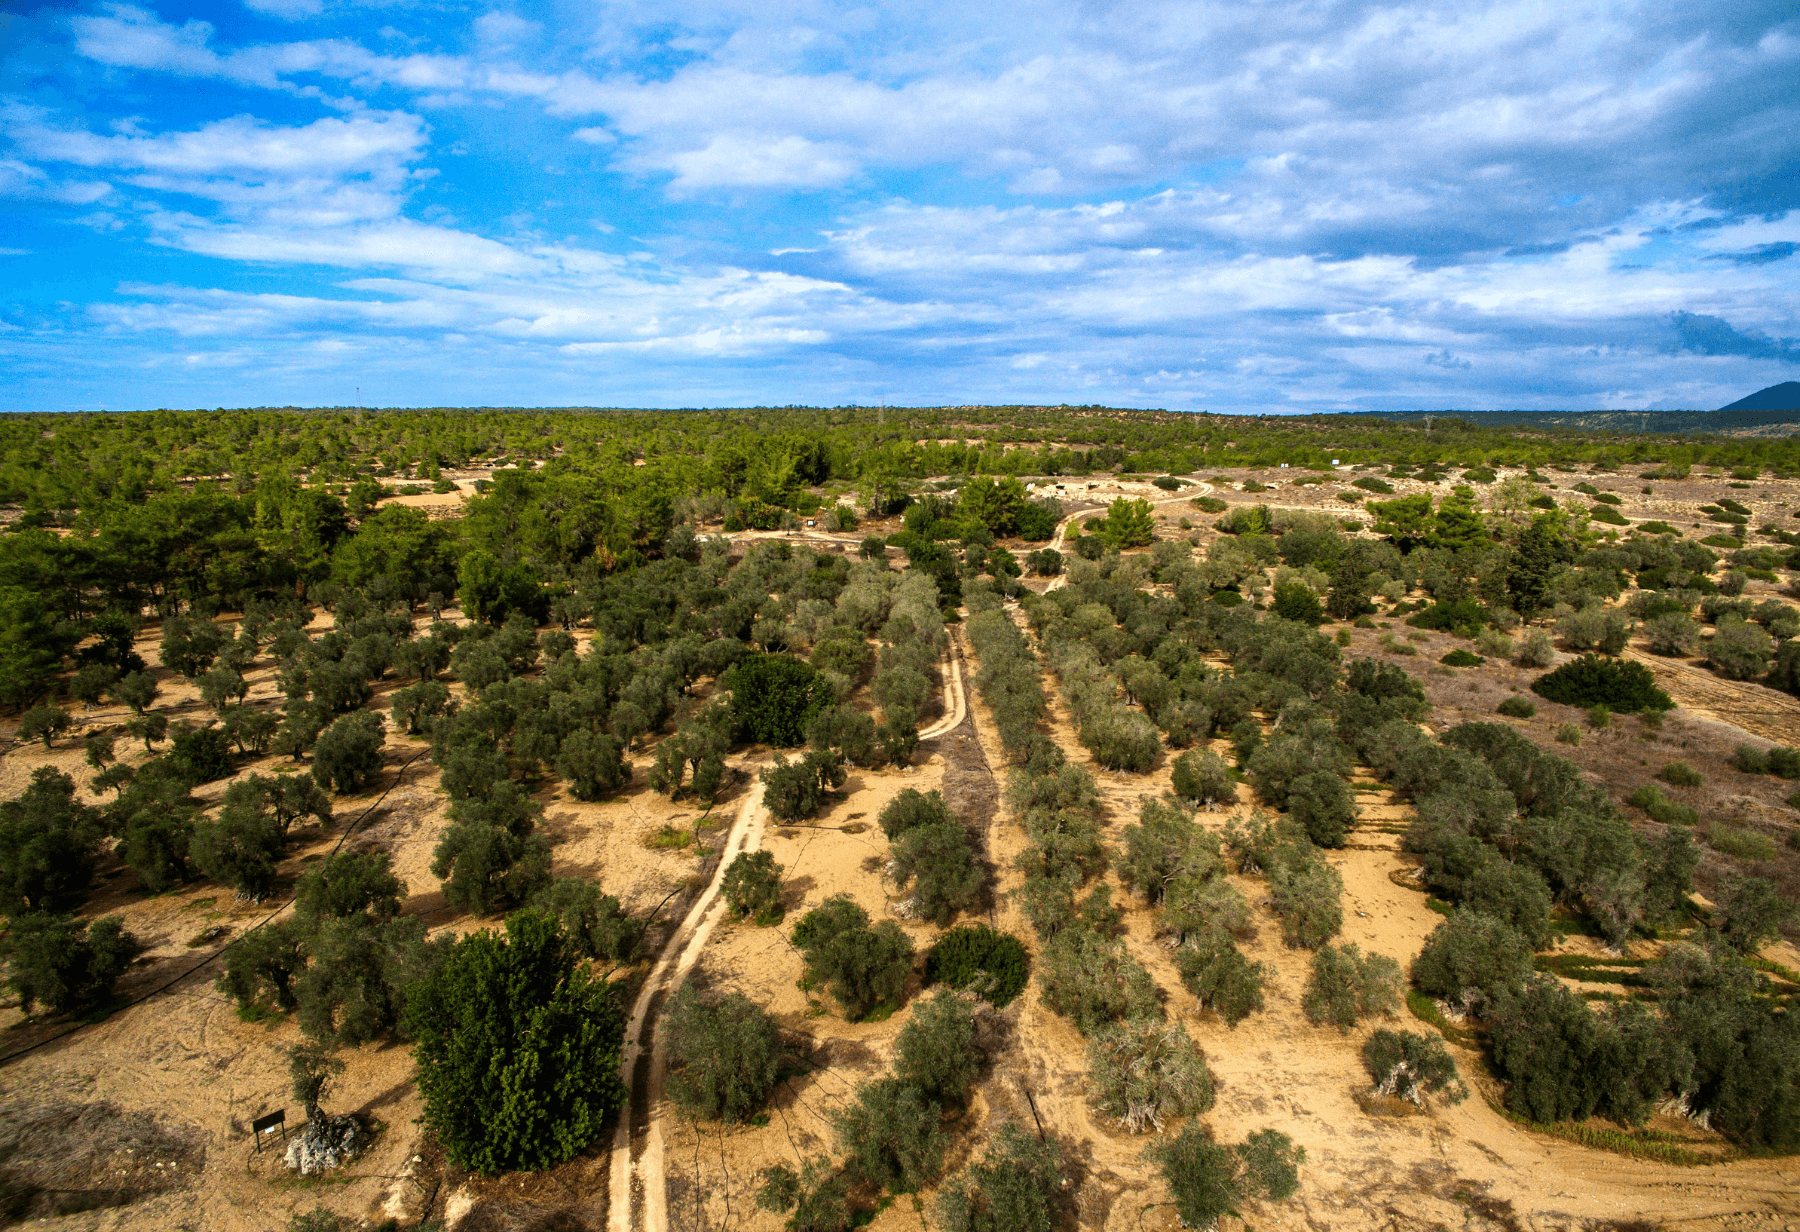 First Olives across the Line - Colives are the first olives to cross the ceasefire line in Cyprus. Read their full adventure here and find out about the details of their journey to your table.